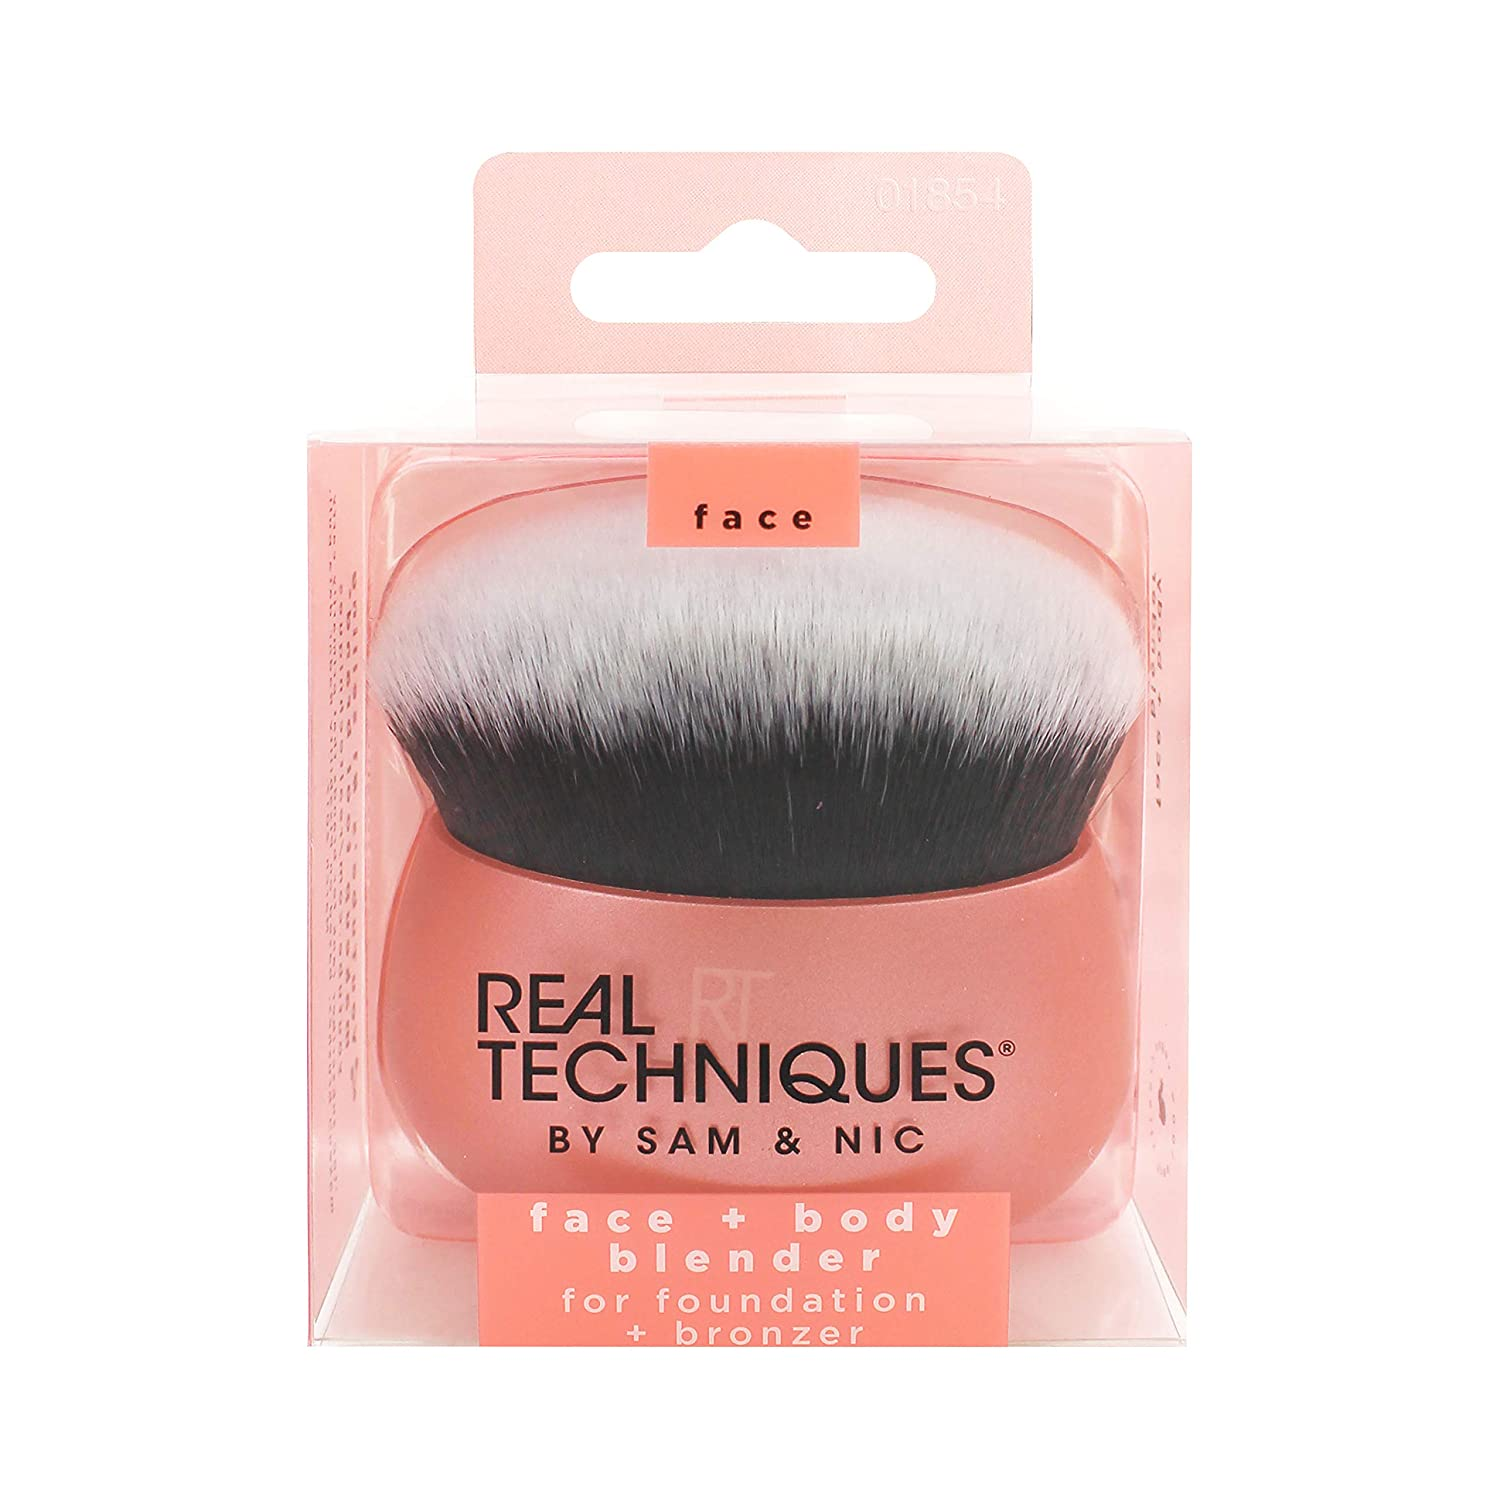 Make-Up Brushes by Real Techniques Face & Body Blender Brush